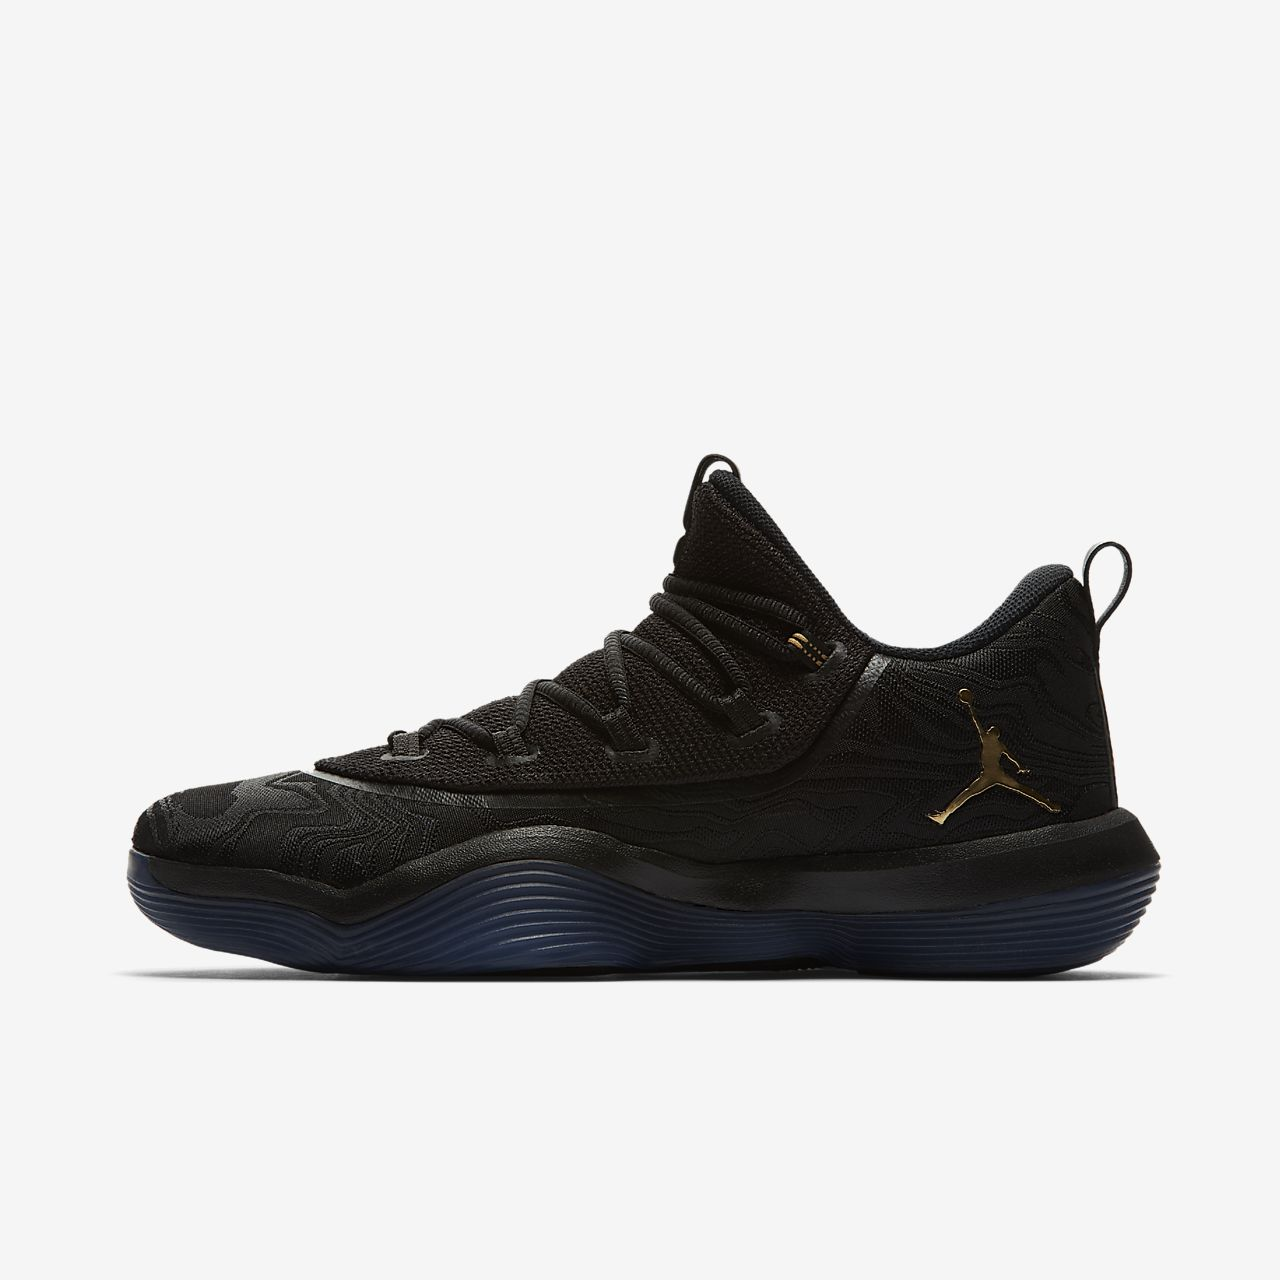 17f33f7efd40 Jordan Super.Fly 2017 Low Men s Basketball Shoe. Nike.com BE